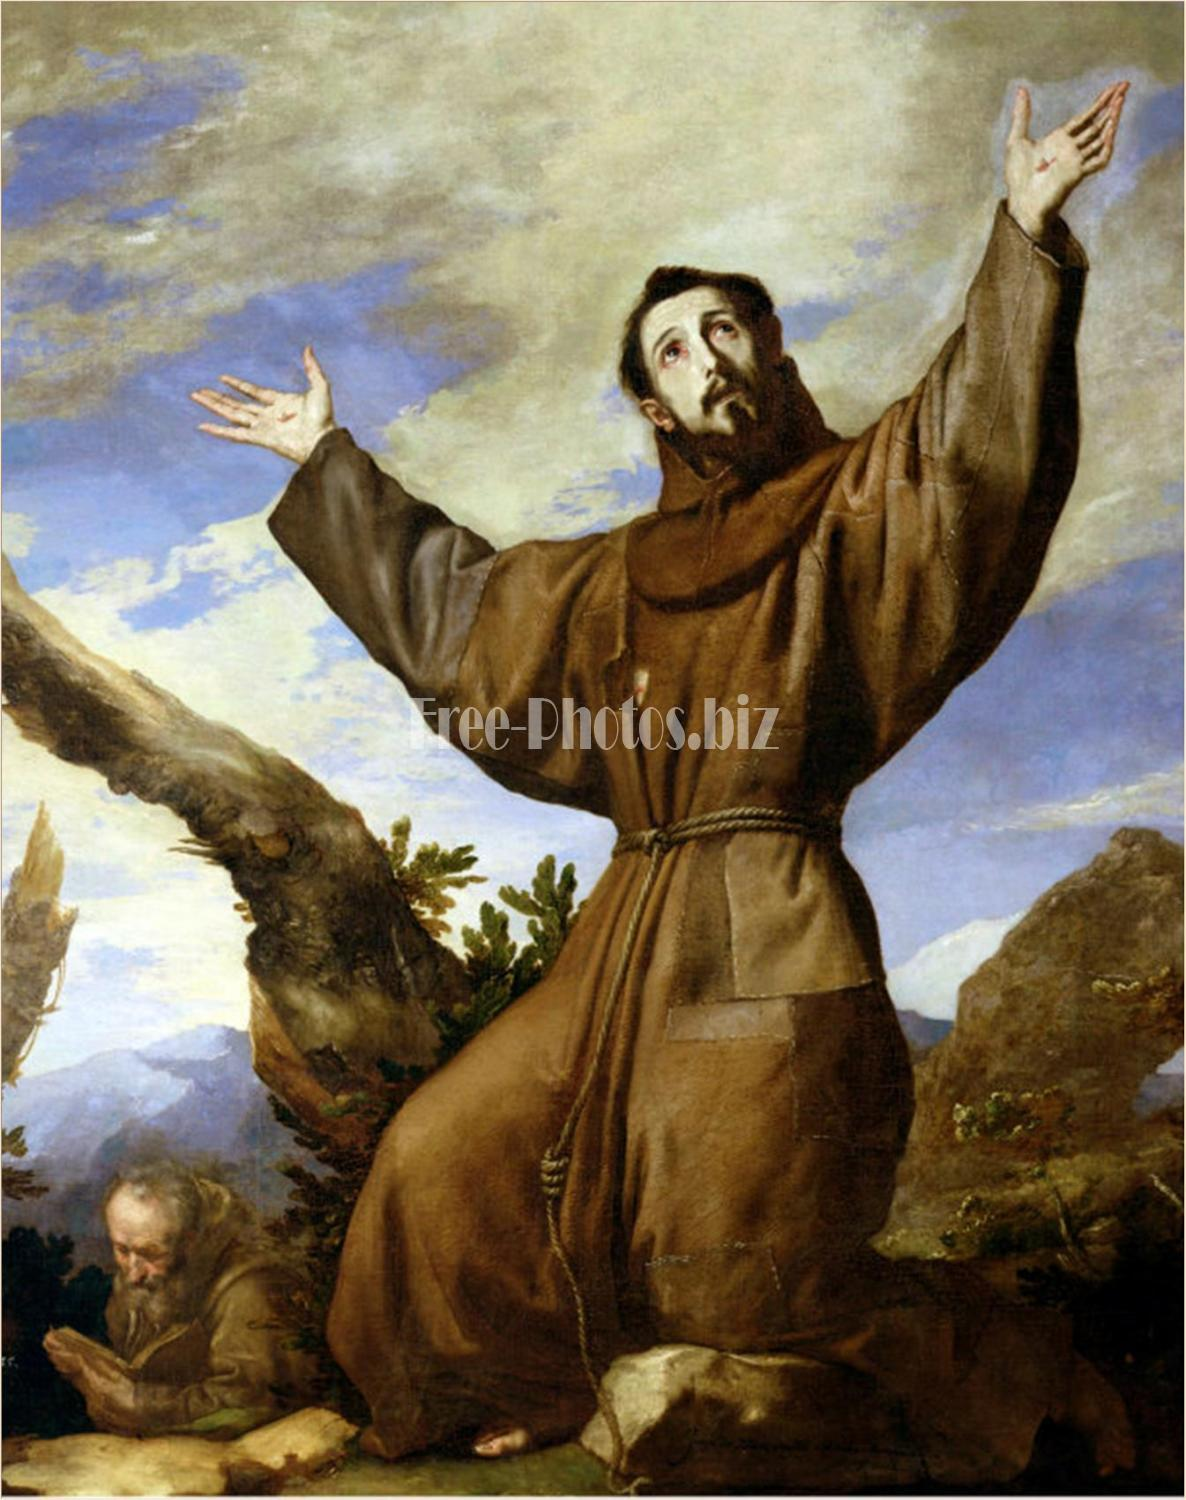 Saint Francis of Assisi by Jusepe de Ribera